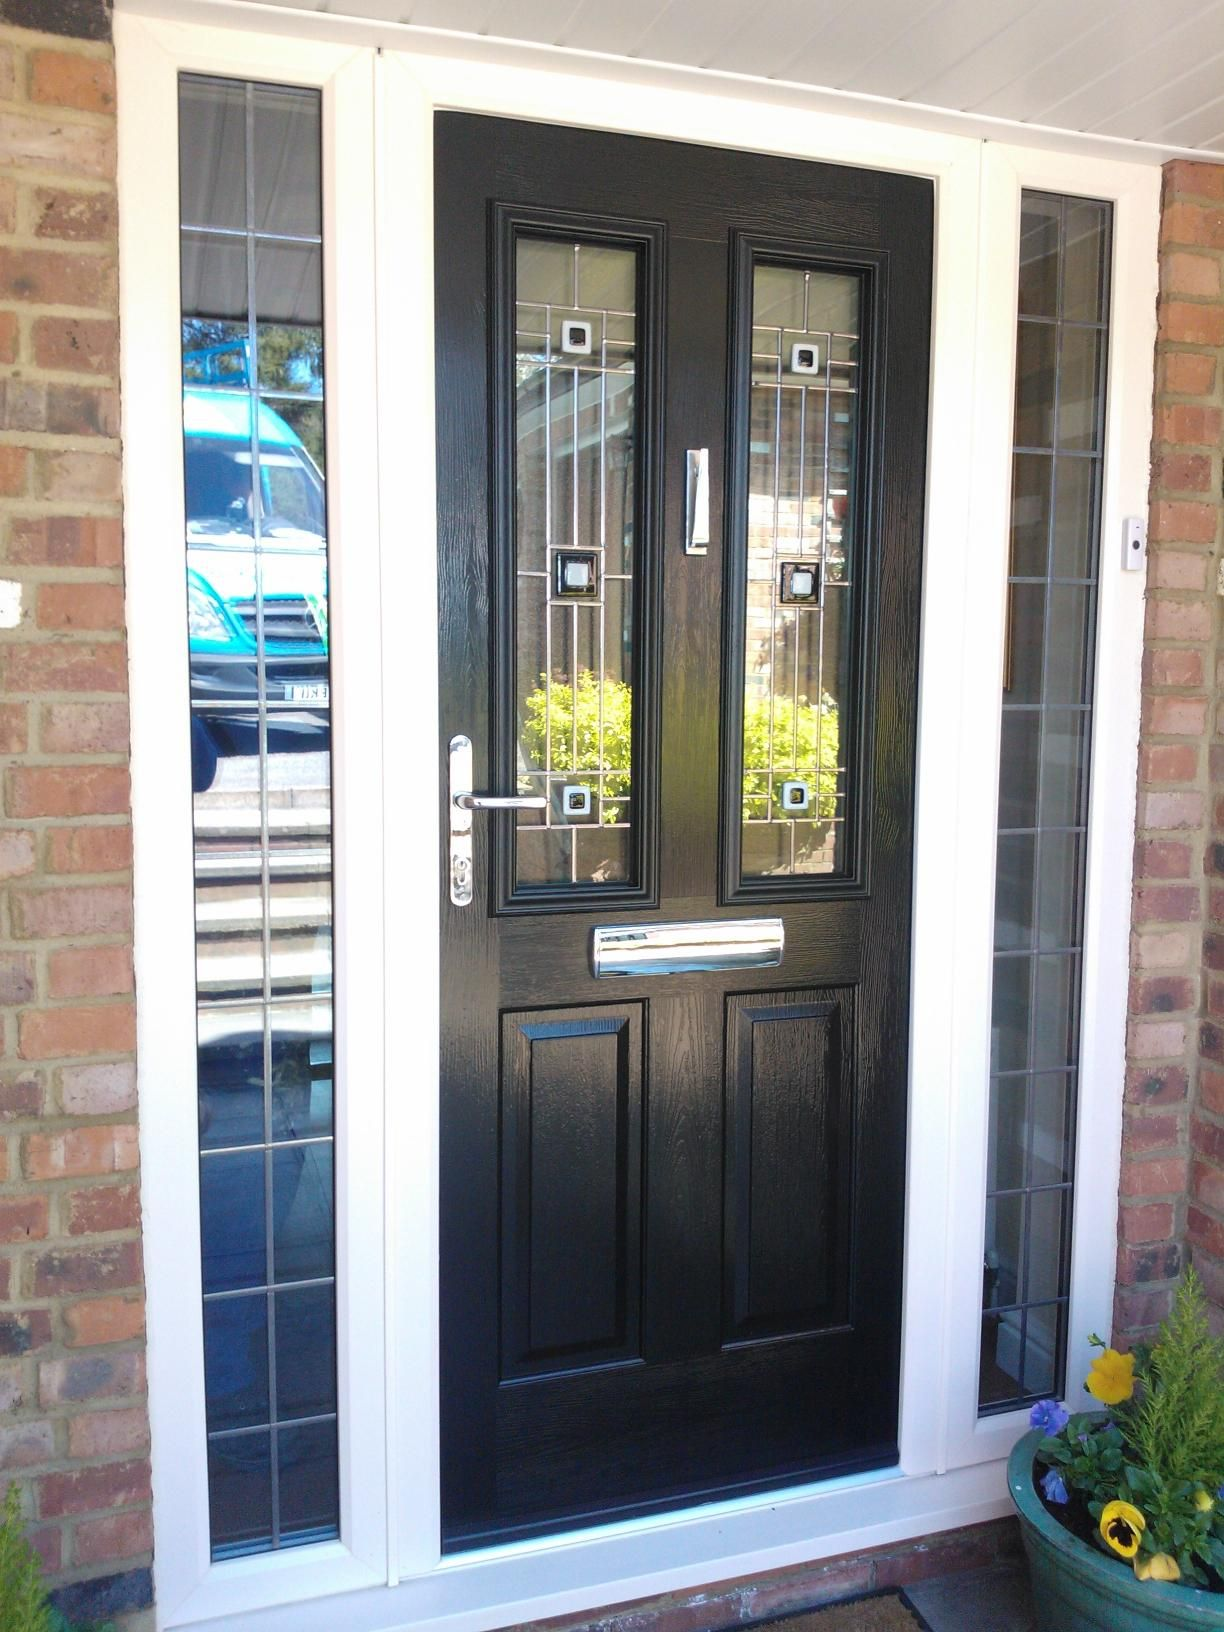 Bon Our Ludlow Timber Core Composite Door Range From The Solidor Collection,  You Can Design Your Perfect New Front Door Online And Get A Quote And Have  It ...